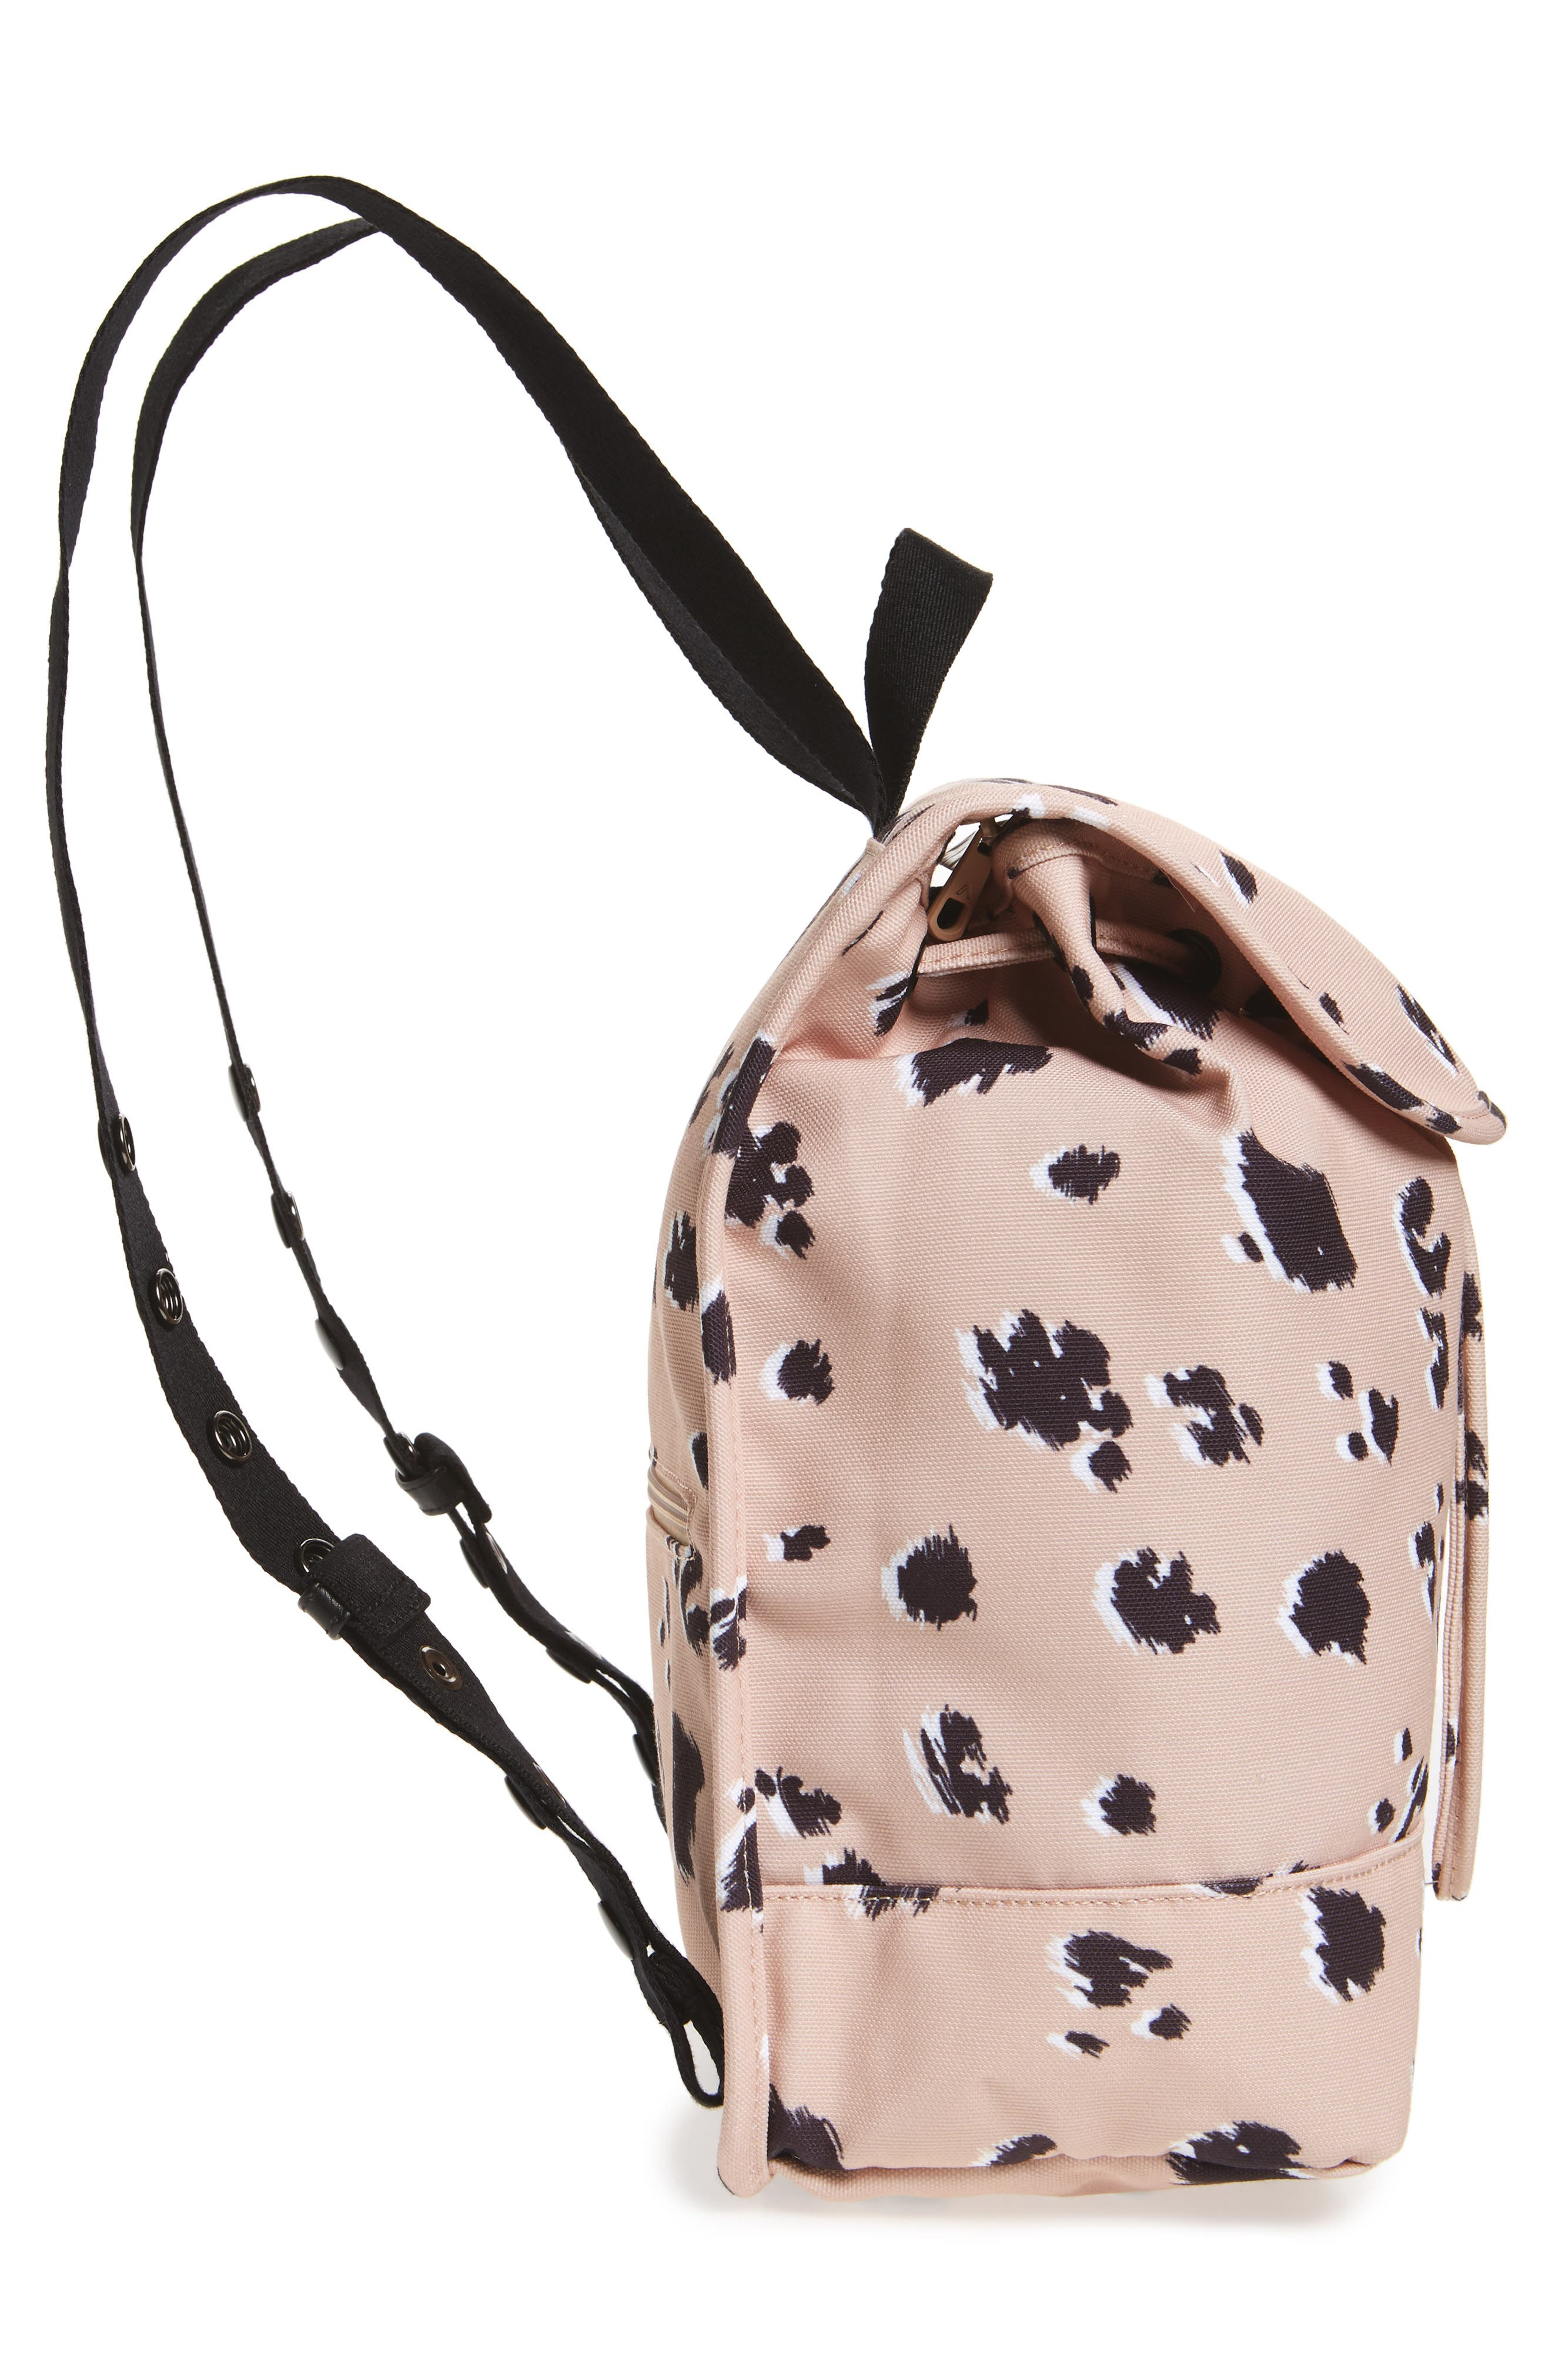 Wingate Hattie Canvas Backpack,                             Alternate thumbnail 5, color,                             Natural Animal